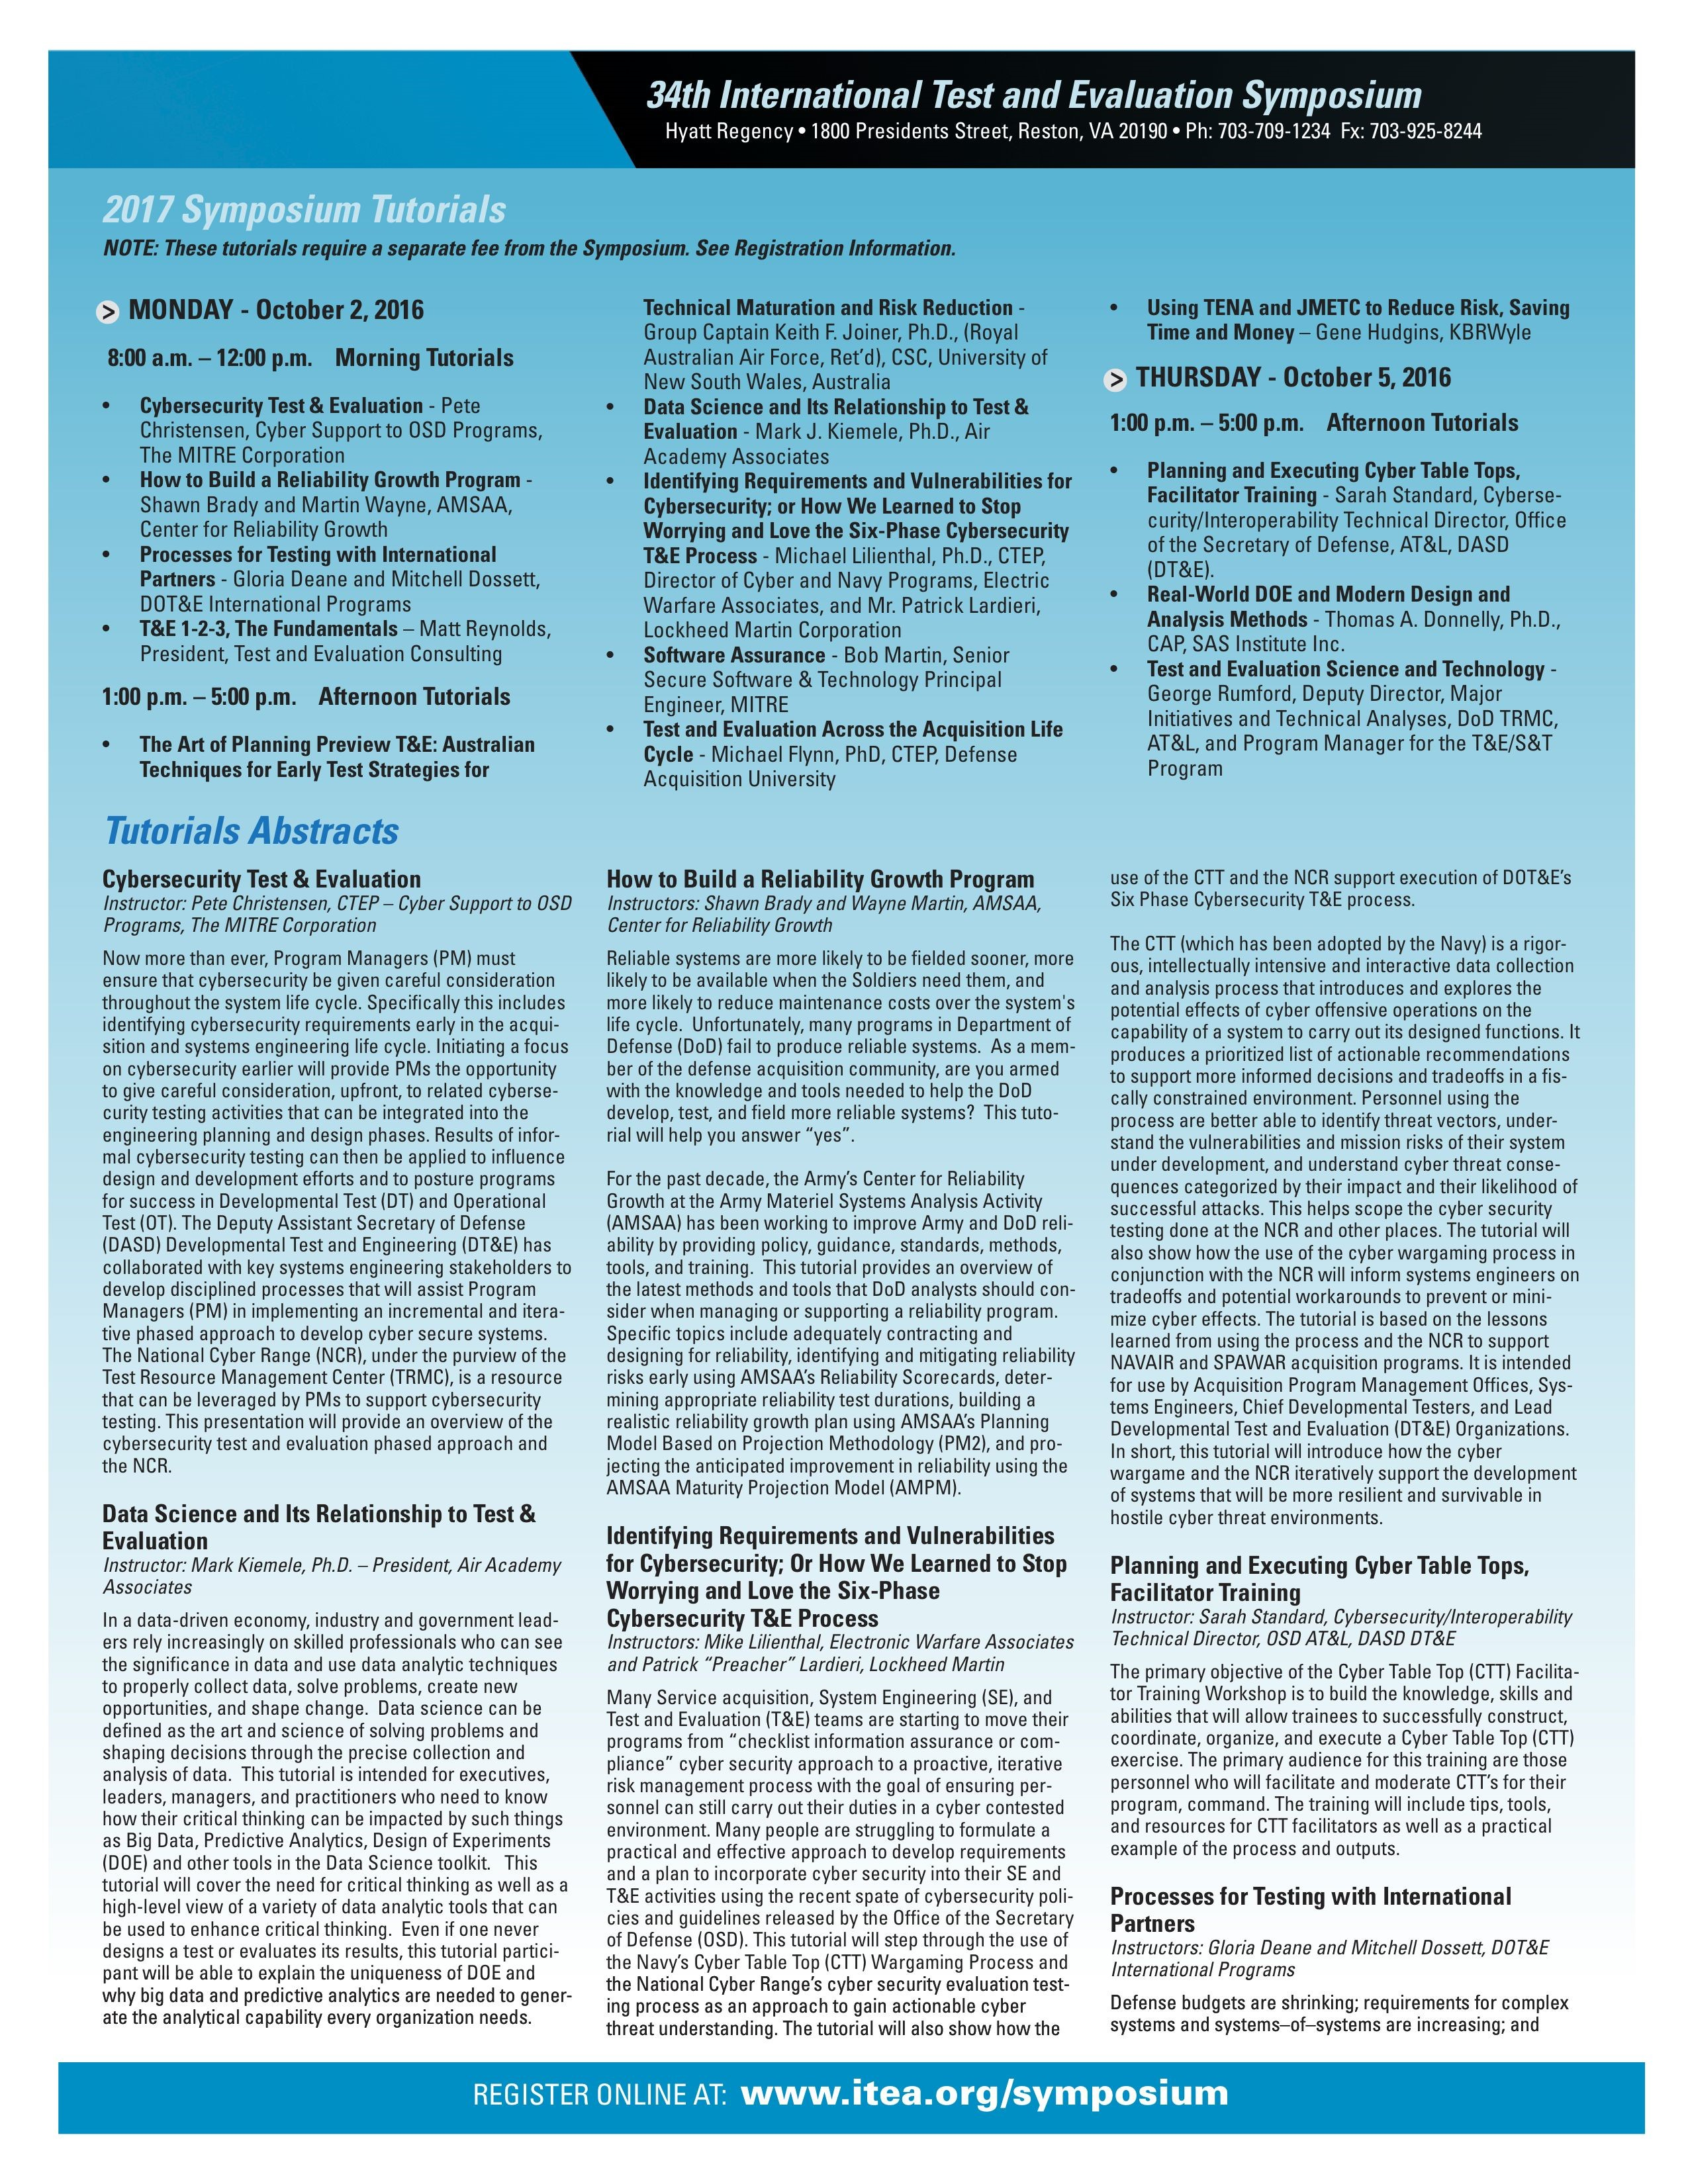 172740 ITEA AnnSymp 4pg Flyer Final Page 3